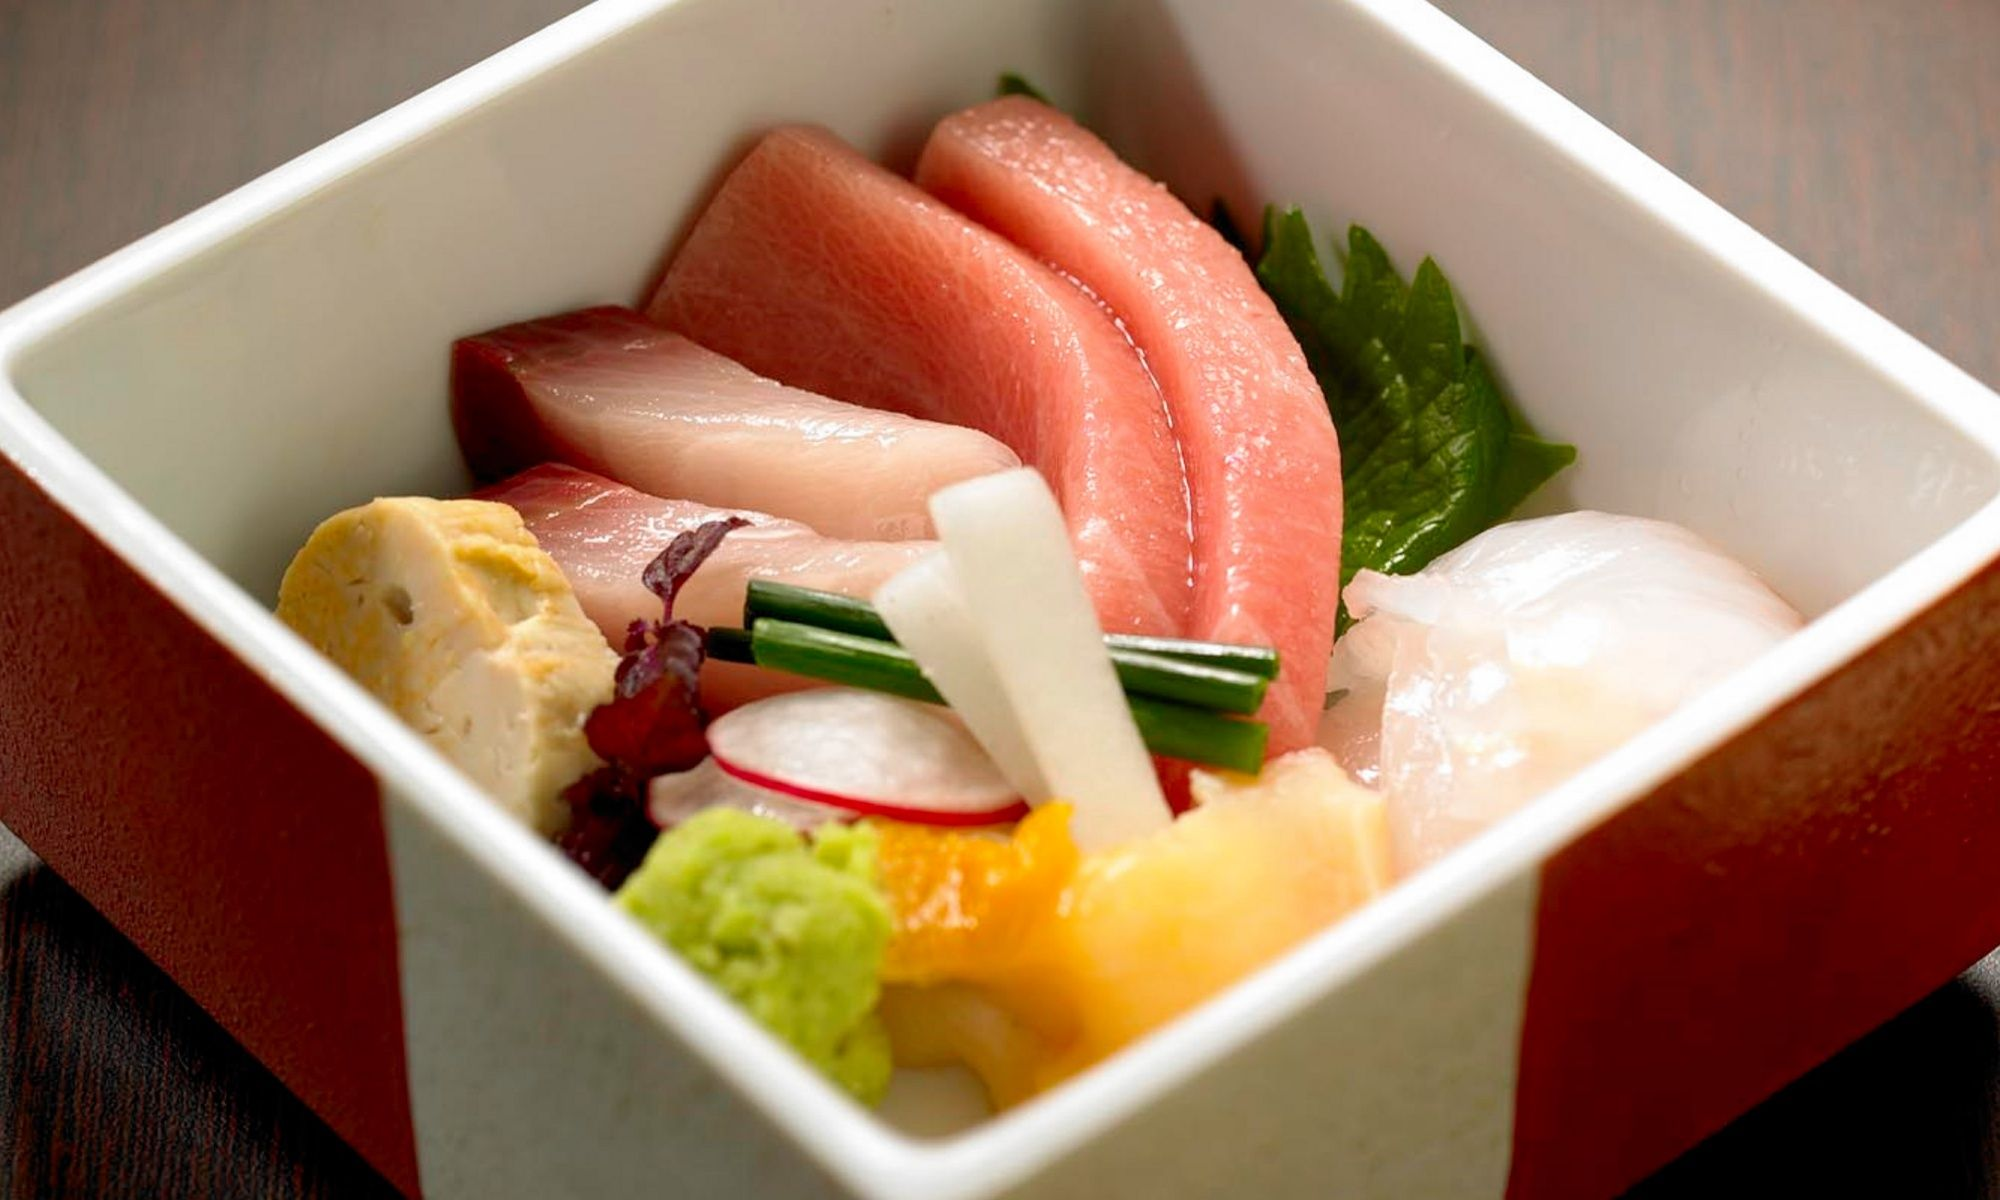 Shikigiku Japanese Restaurant Welcomes Spring With Seasonal Delicacies